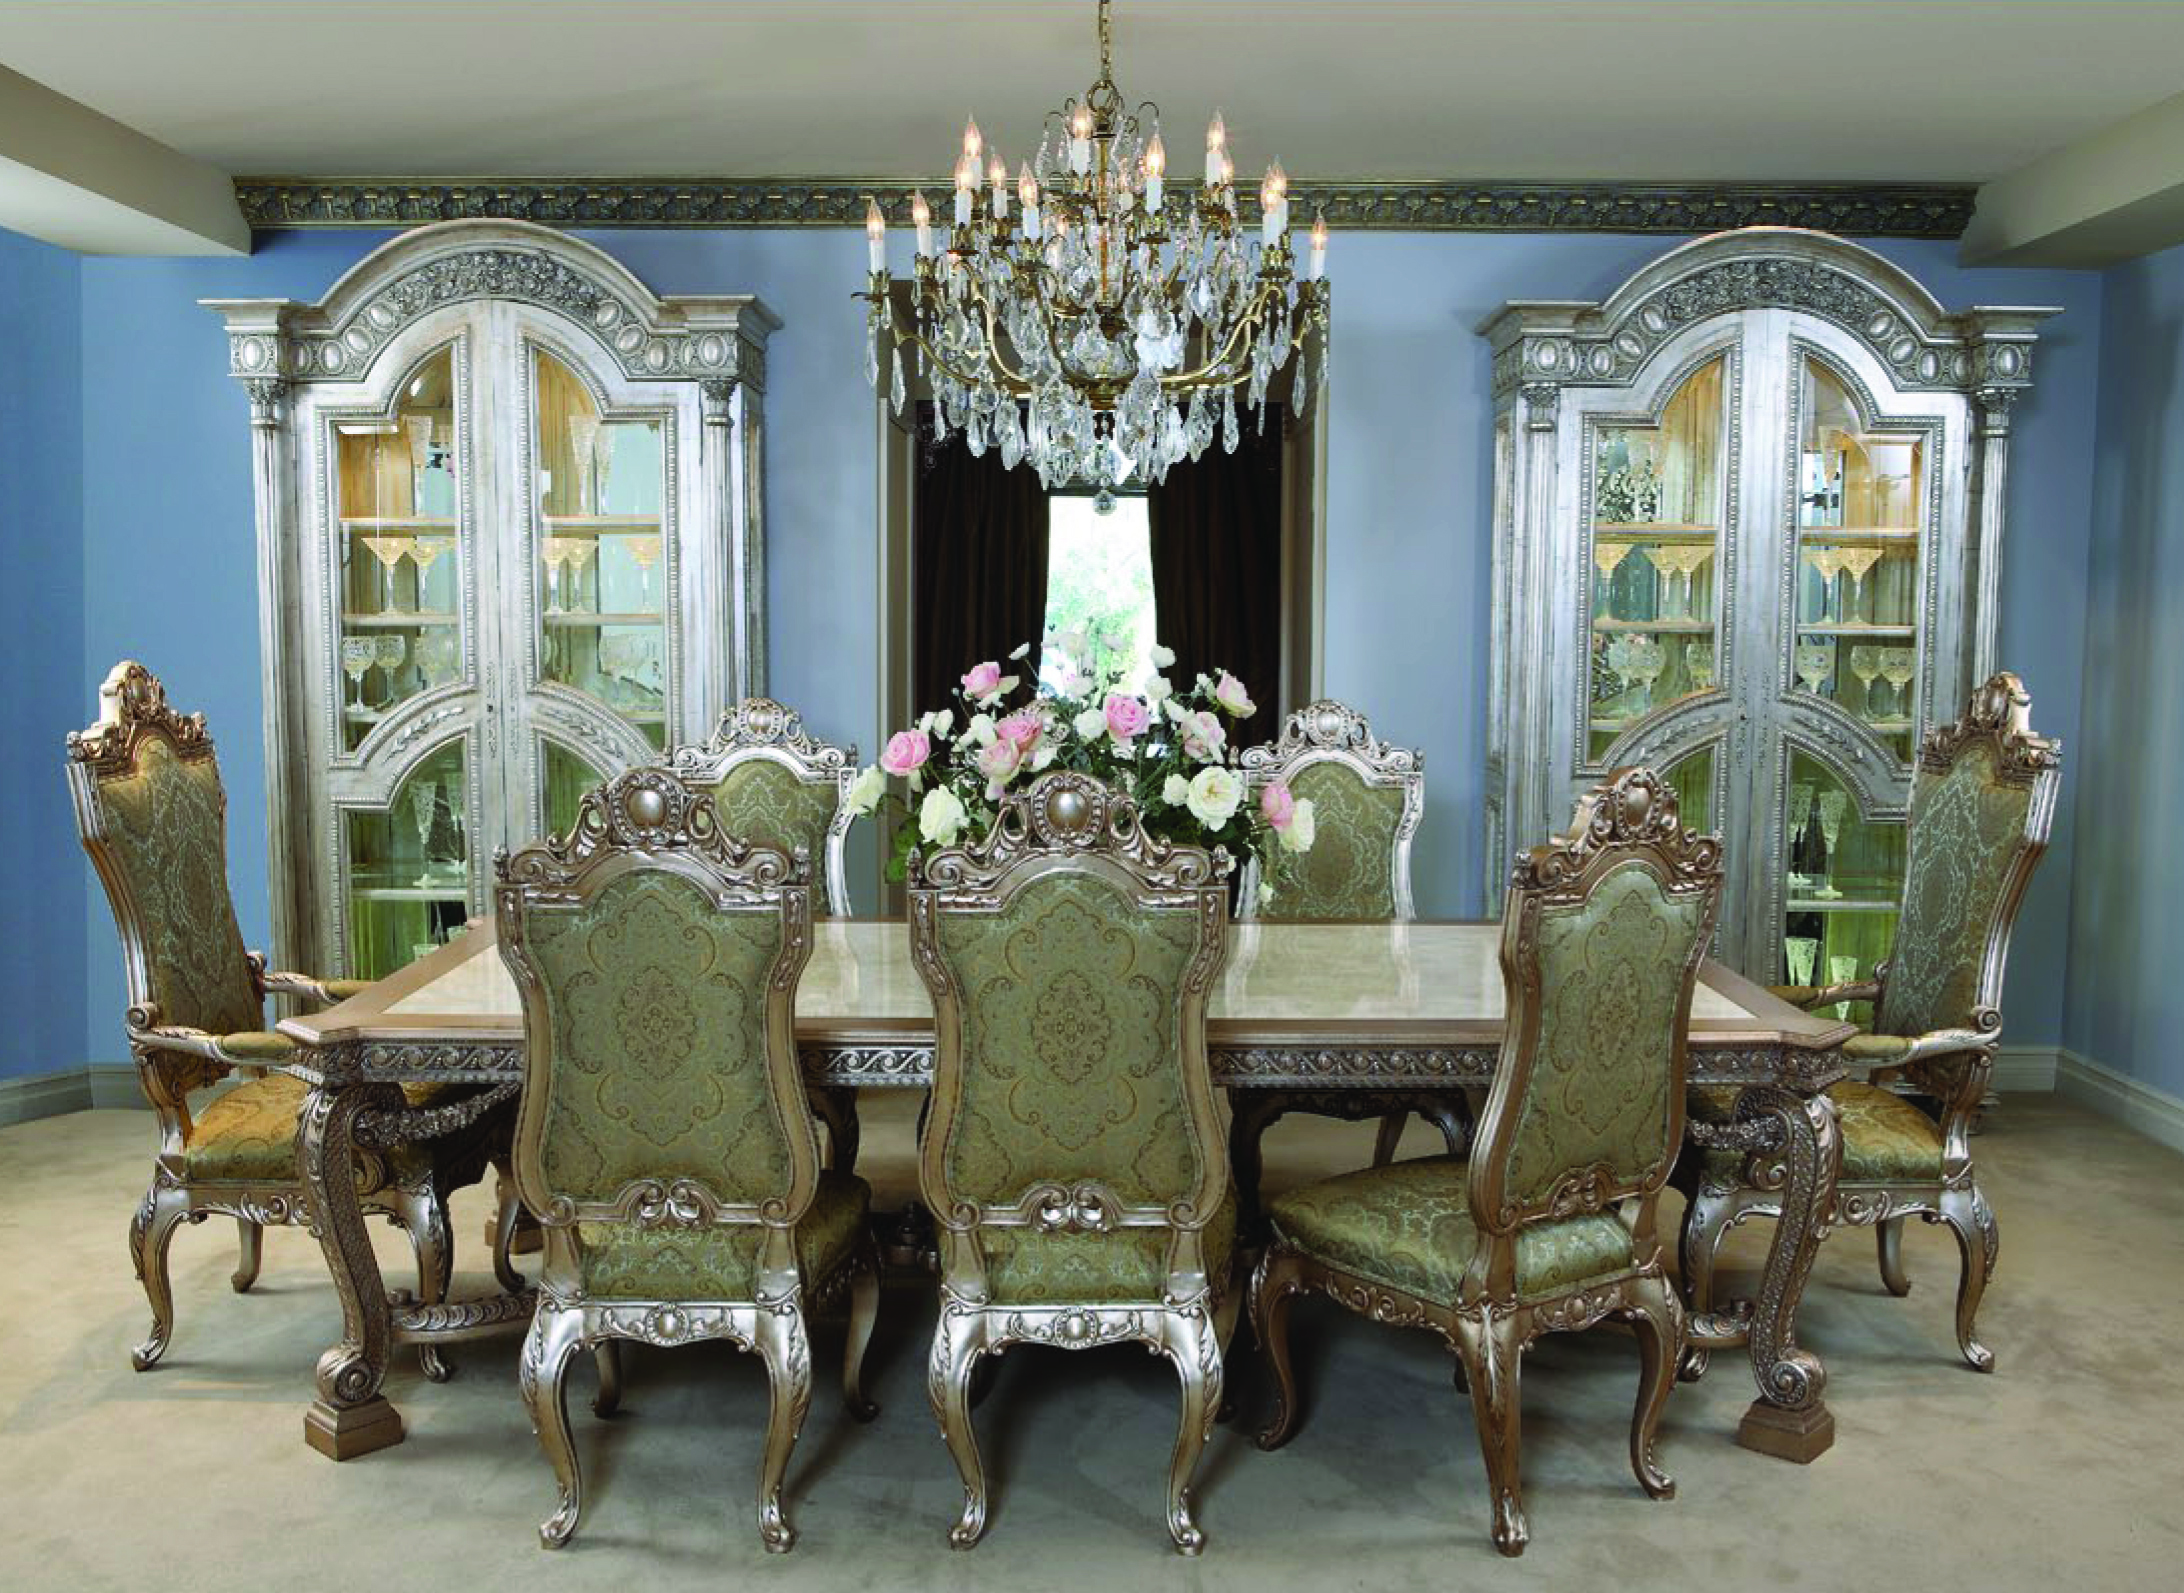 Dining Table Seating 10 De Medici Dining Table Chairs Seating For 10